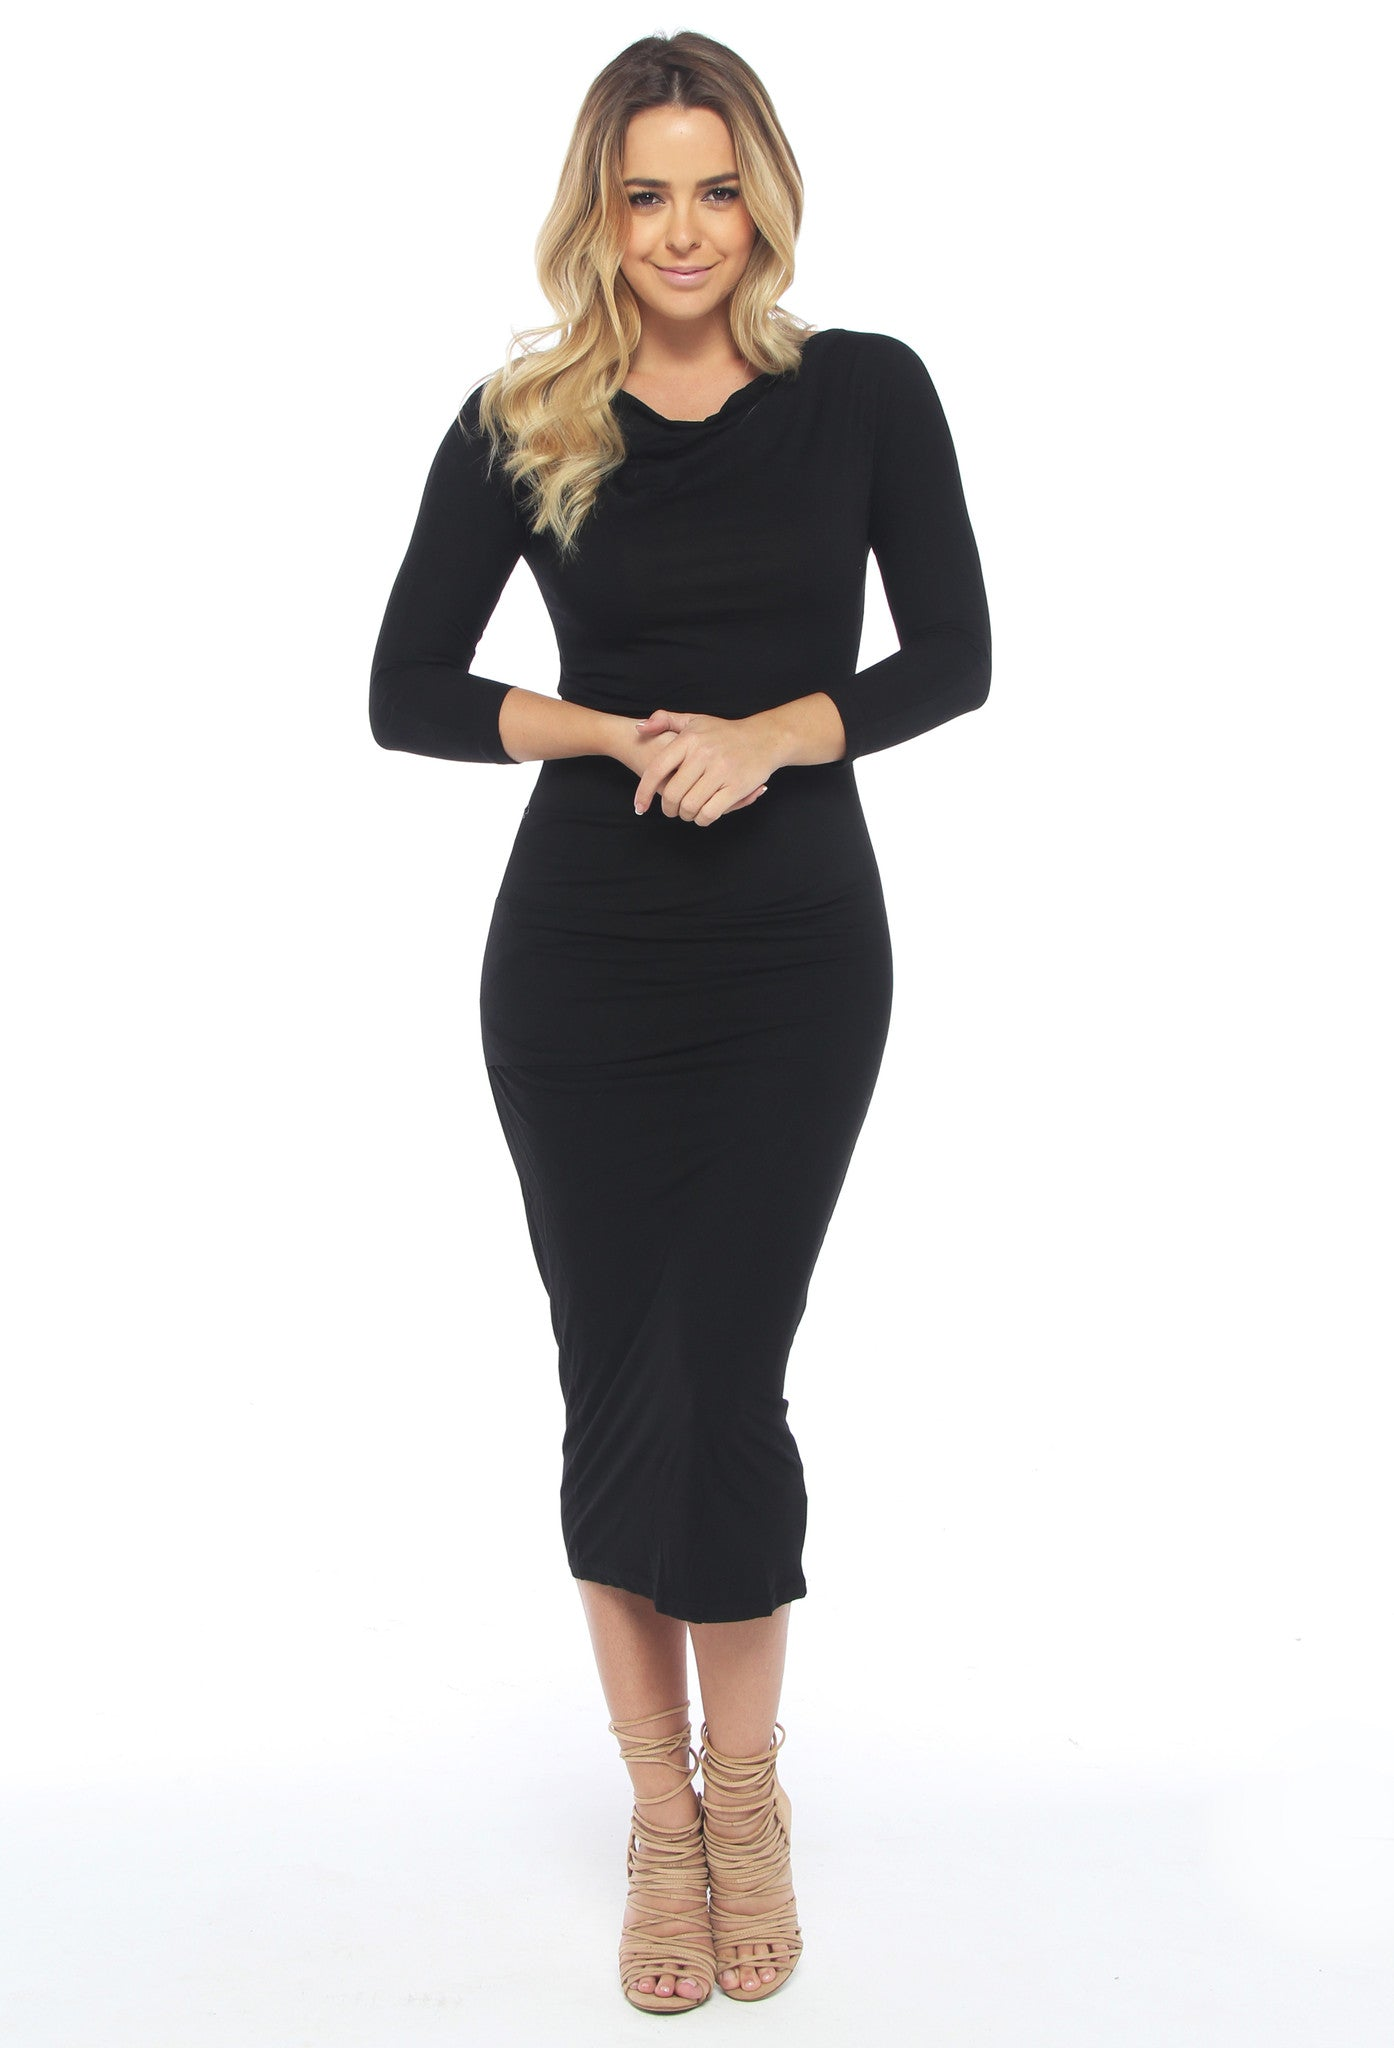 Modal Midi Black Dress - THE OUT LANE